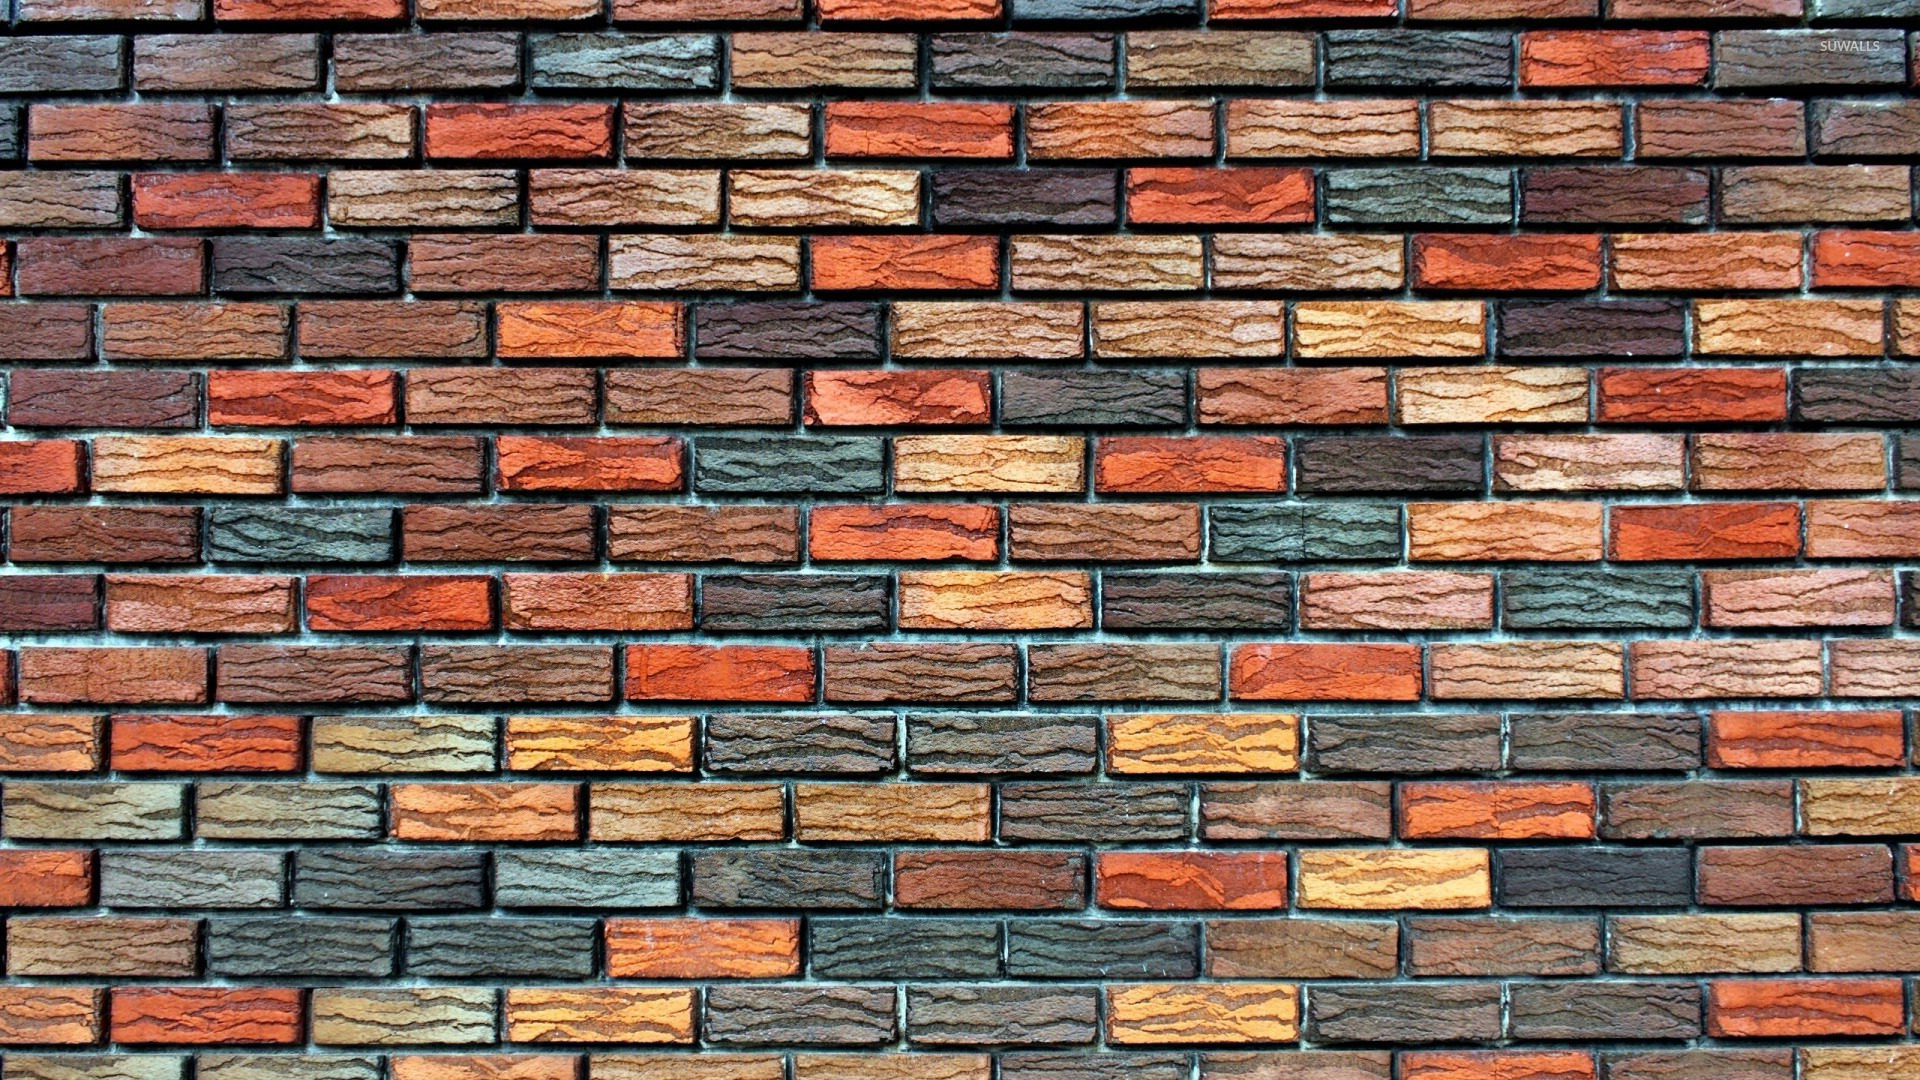 Brick Wallpaper Colors Hd Wallpapers Hd Backgrounds